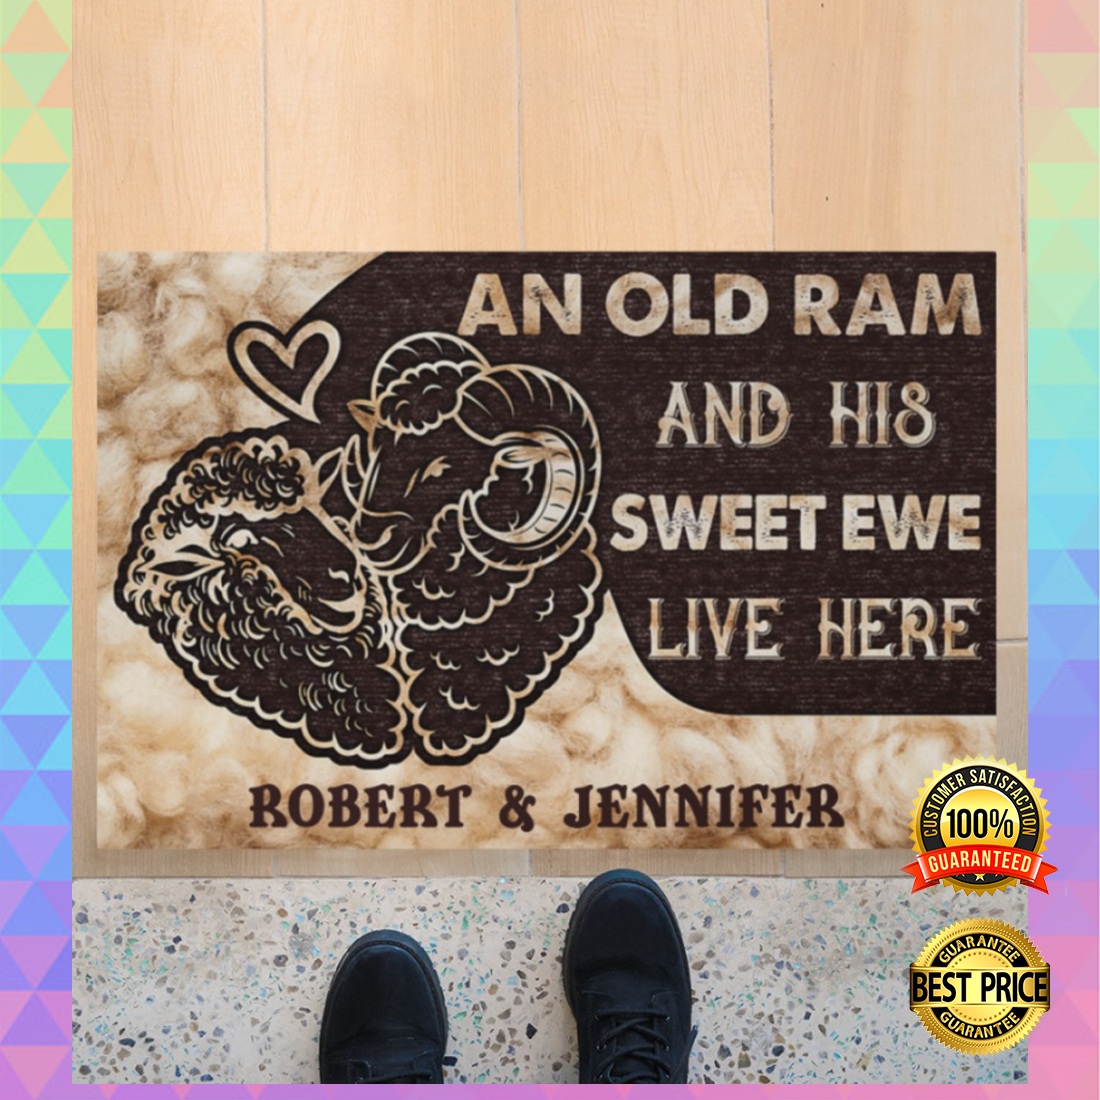 PERSONALIZED AN OLD RAM AND HIS SWEET EWE LIVE HERE DOORMAT 6